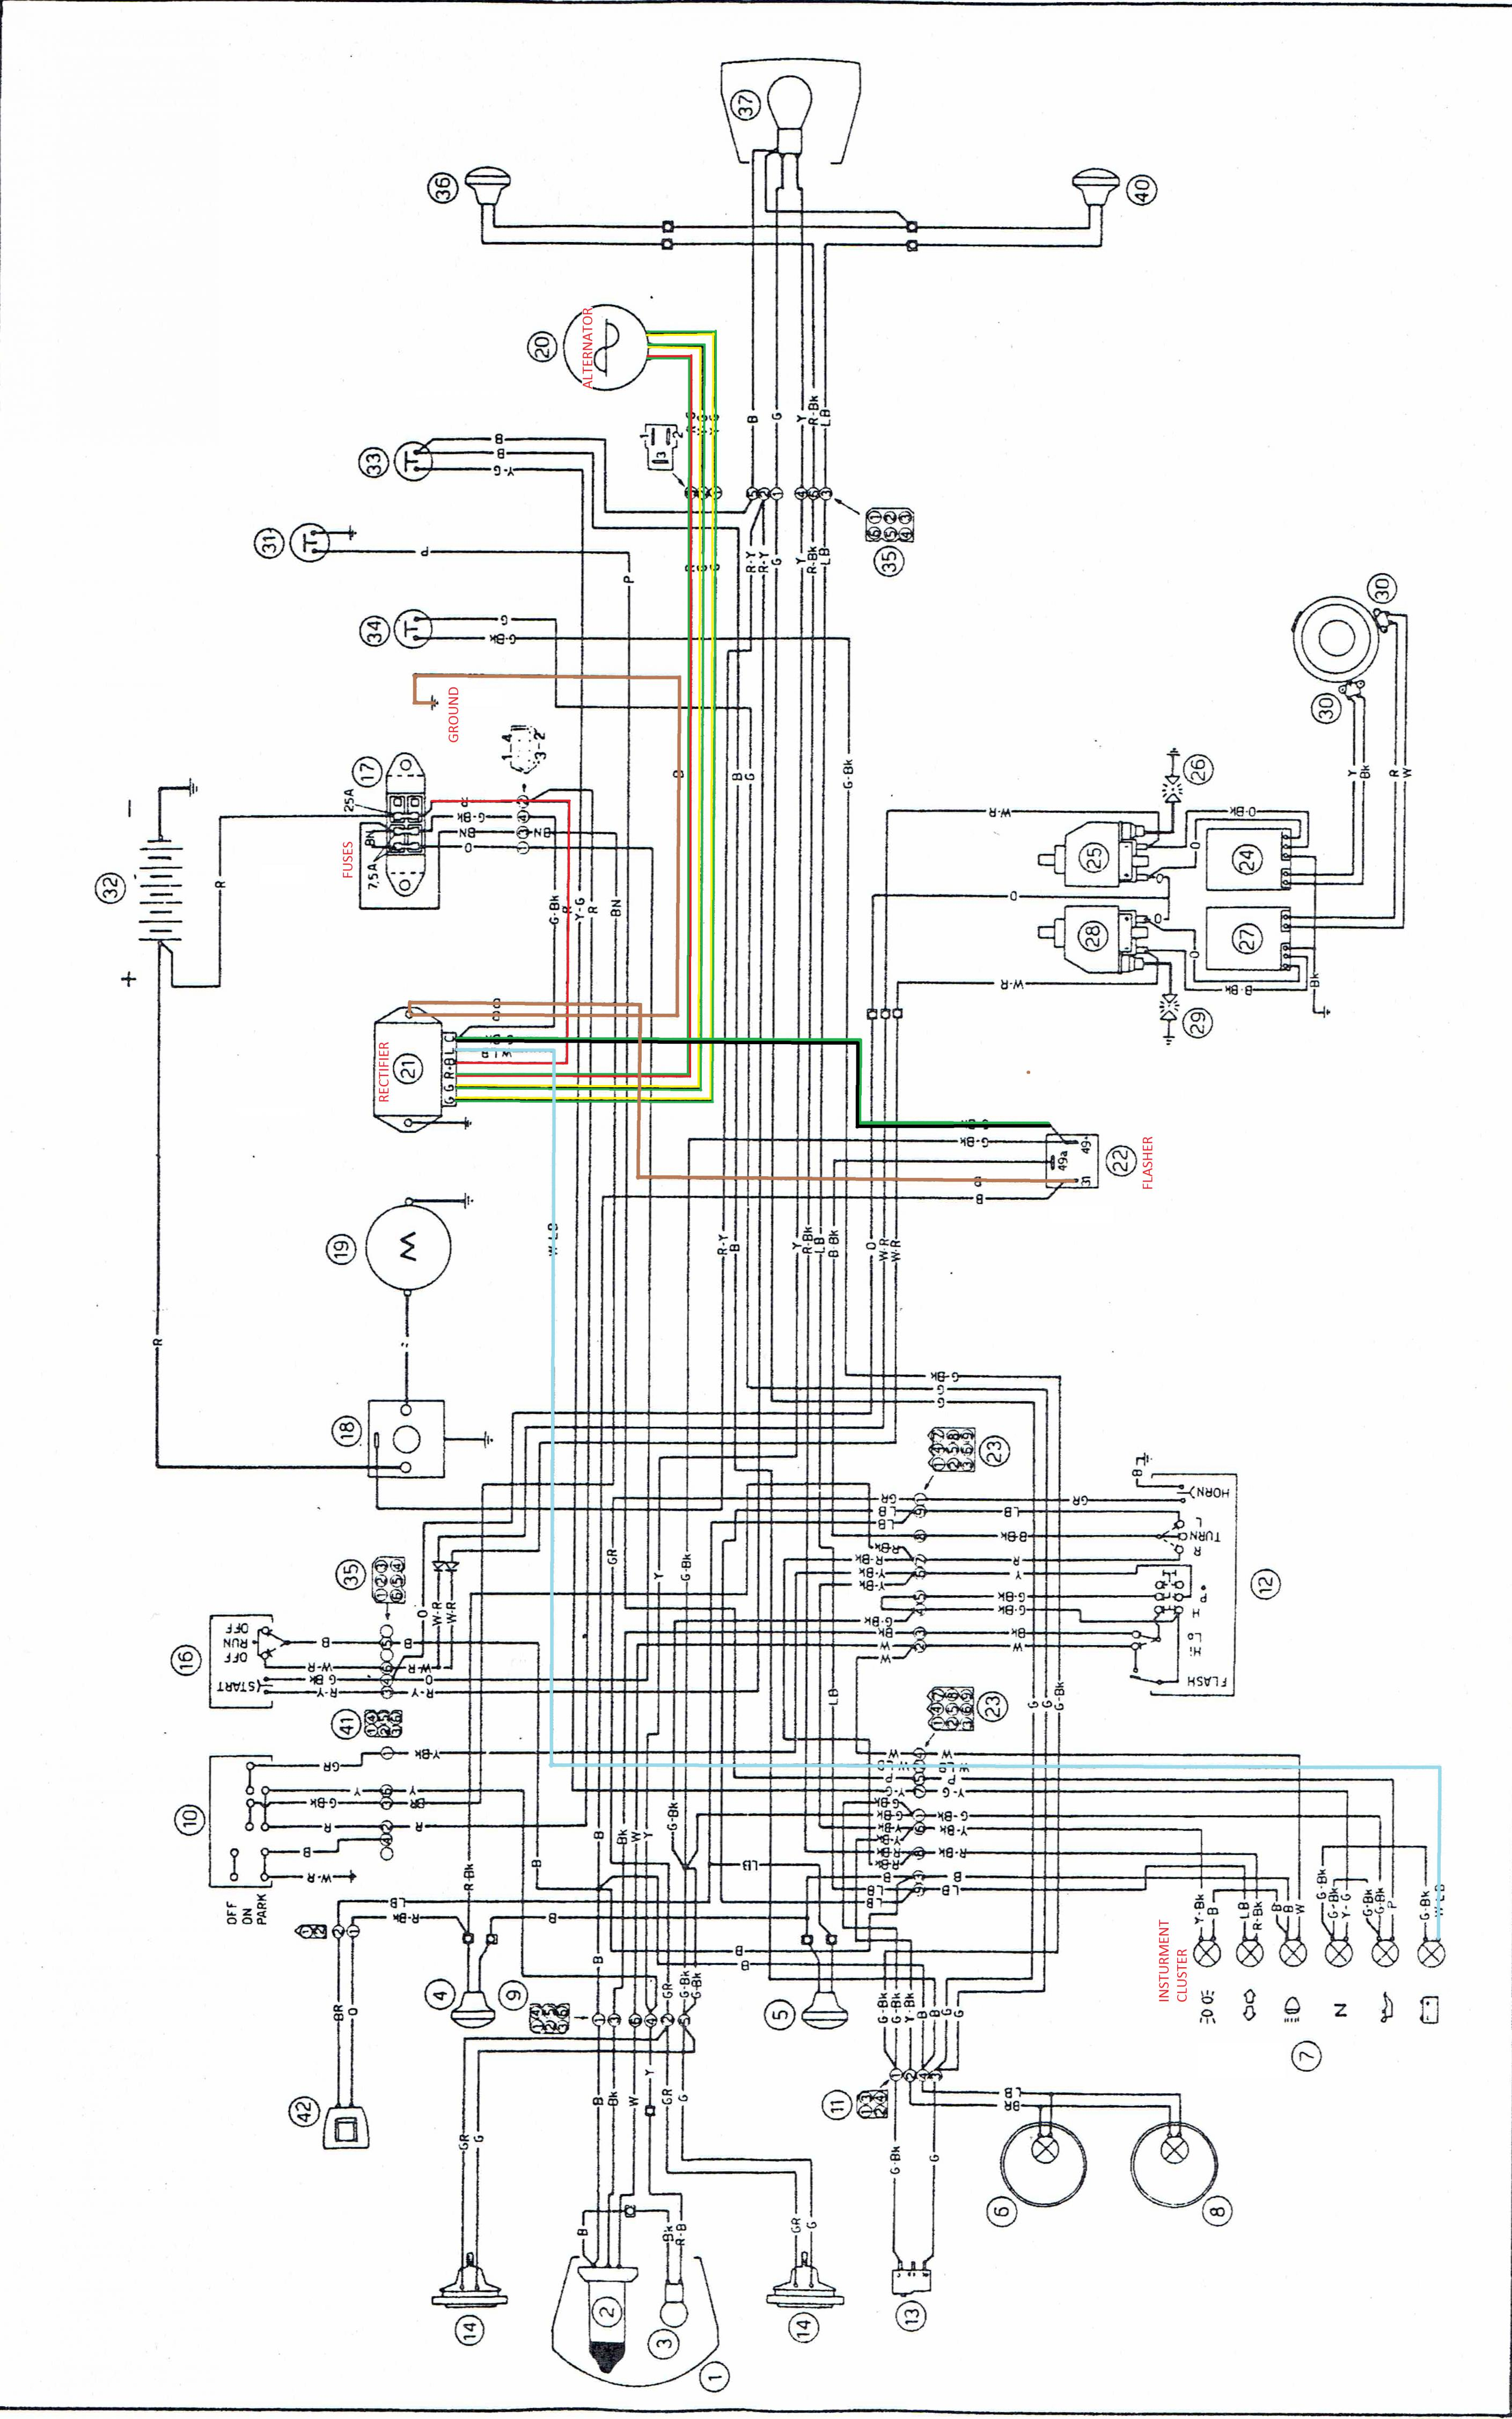 ducati regulator schematic wiring new rectifier to indiana 650 6 wires stock  can i use 5  wiring new rectifier to indiana 650 6